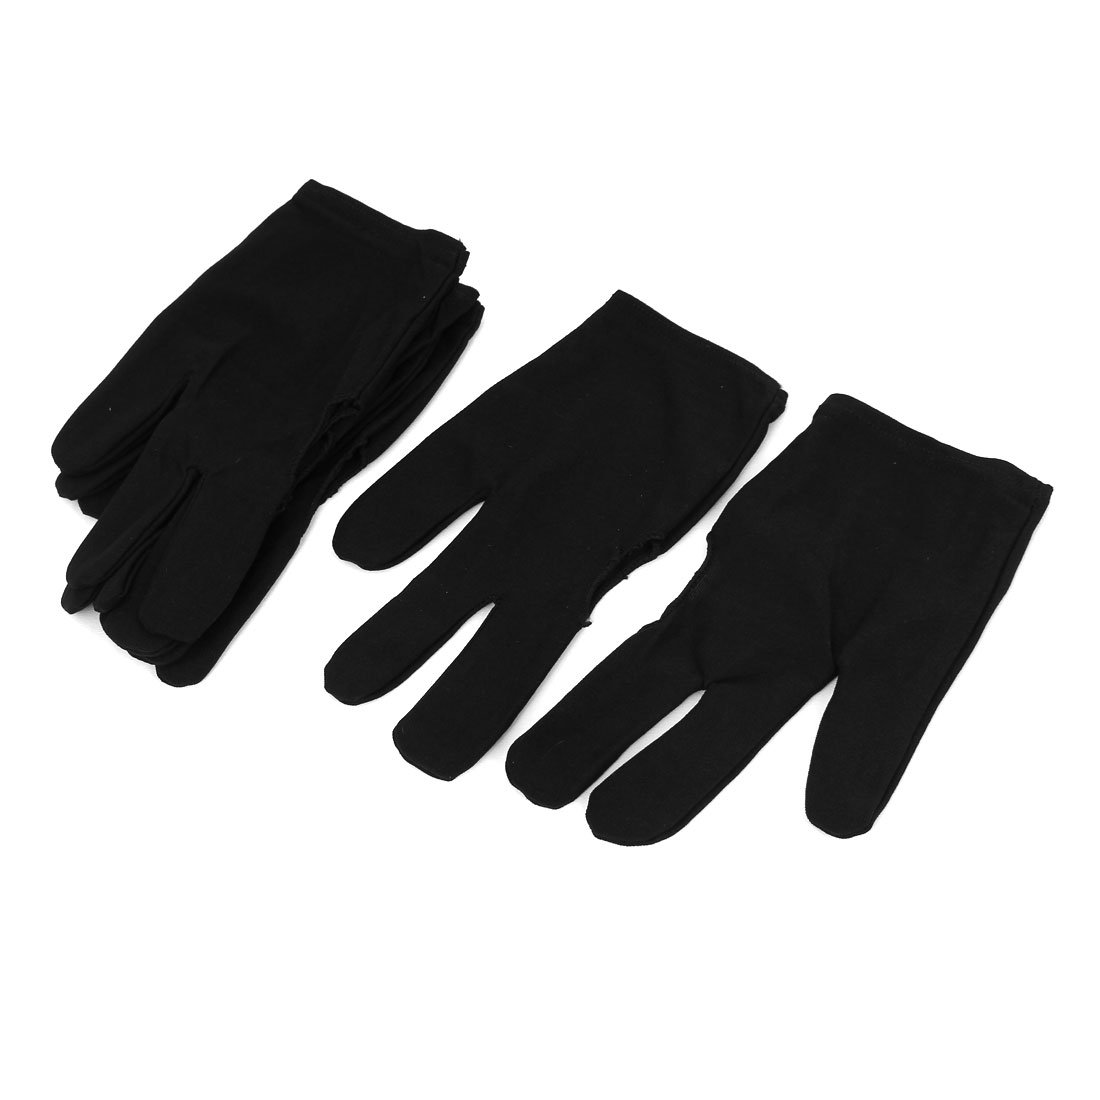 uxcellSport Billiard Pool Cue 3-Finger Elastic Gloves 3 Pairs Black a16020500ux0159